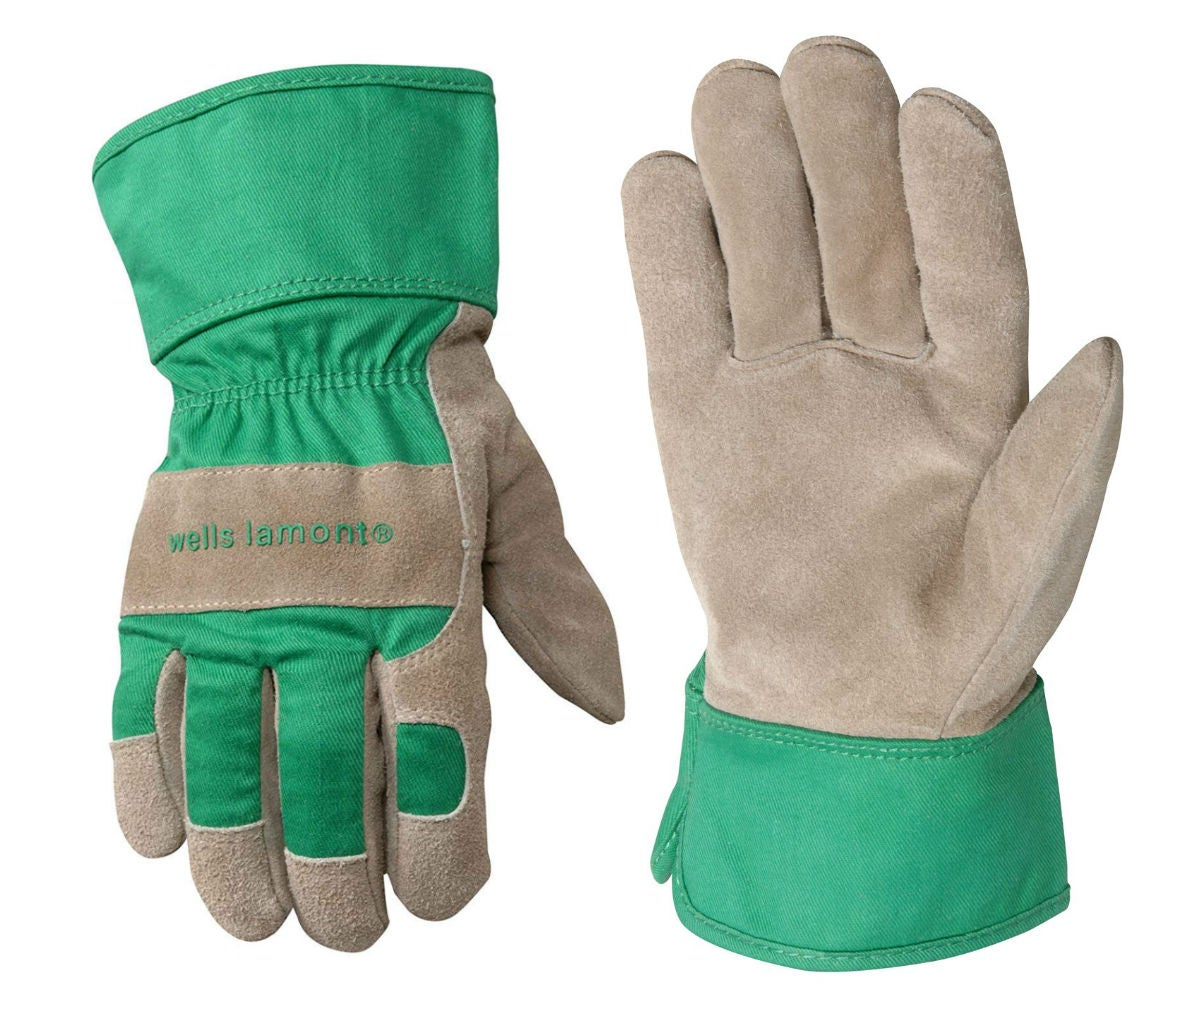 The Best Gardening Gloves: Wells Lamont